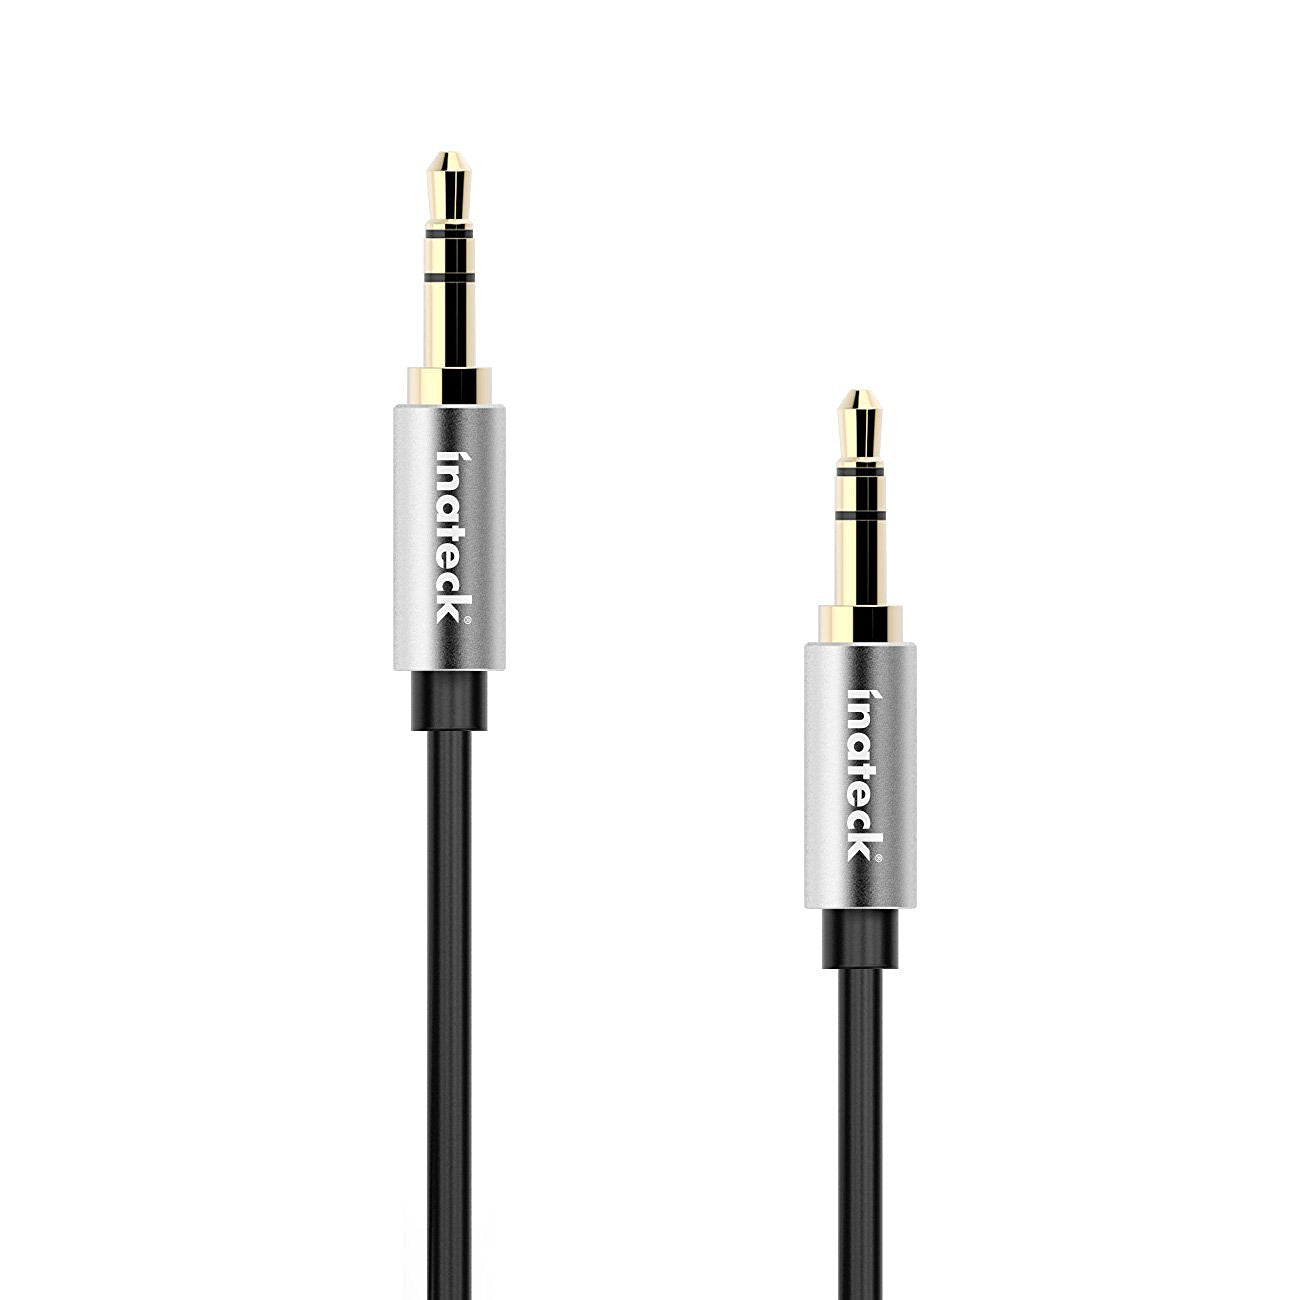 3.5mm Audio Cable AC1008